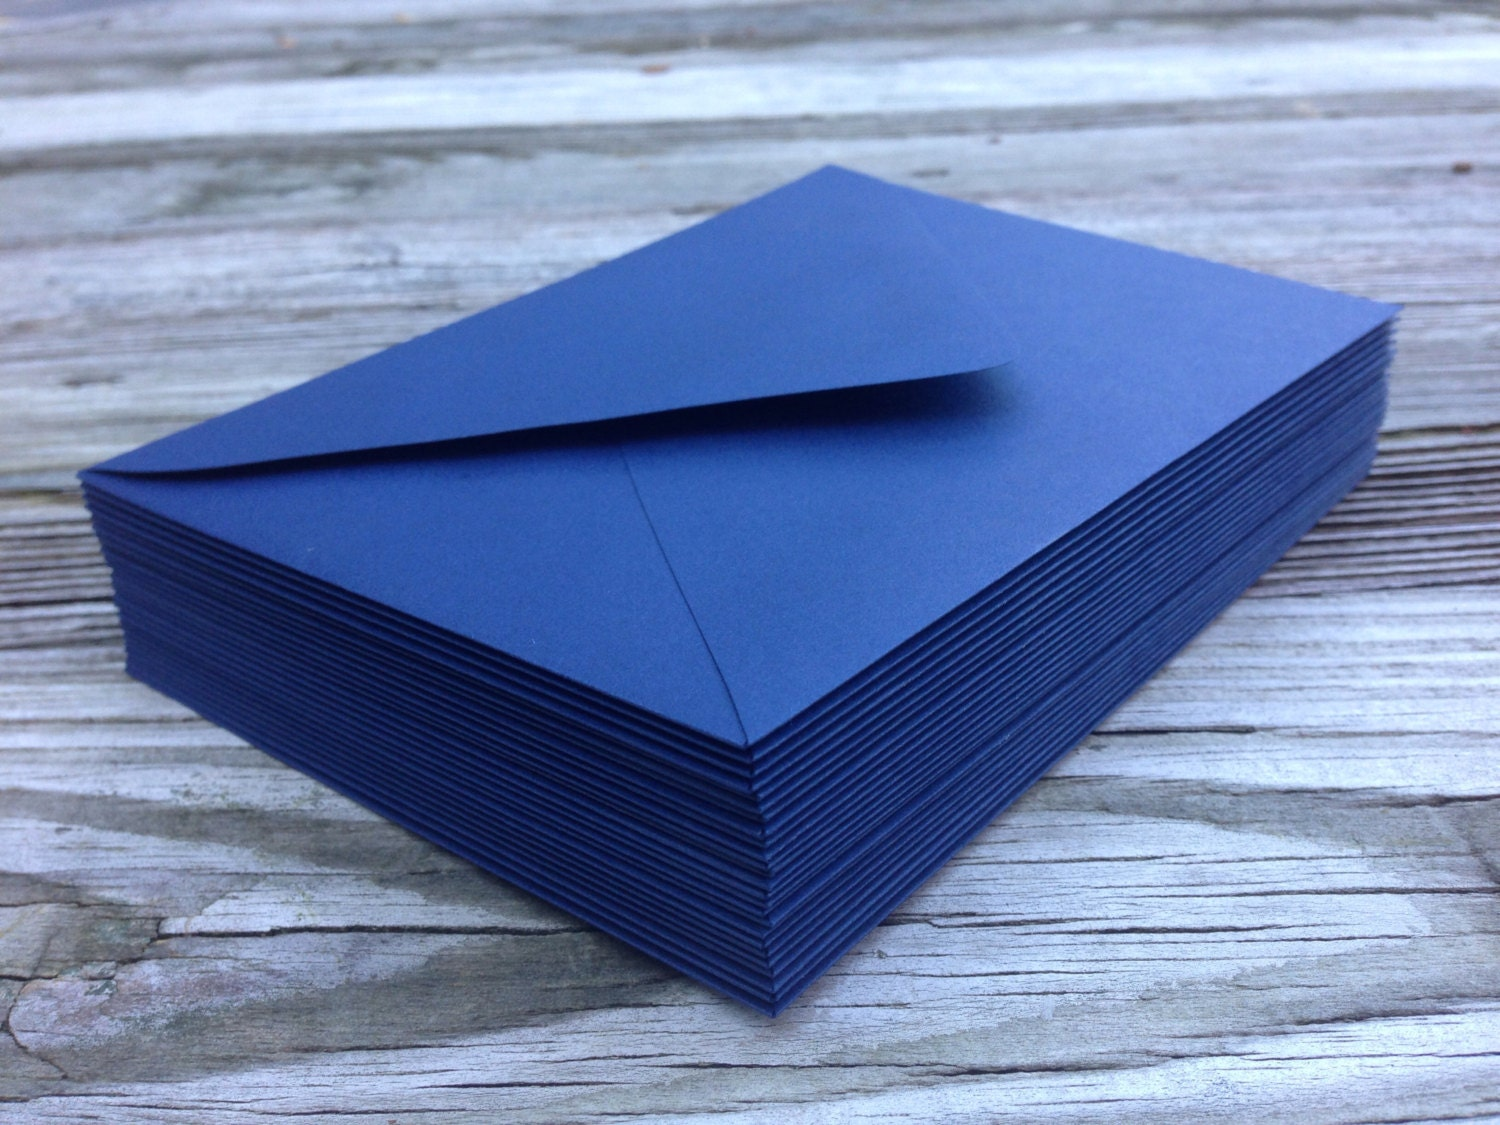 50 navy blue a7 5x7 invitation or a1 4bar rsvp pointed flap 50 navy blue a7 5x7 invitation or a1 4bar rsvp pointed flap envelopes night navy blue paper source stopboris Image collections